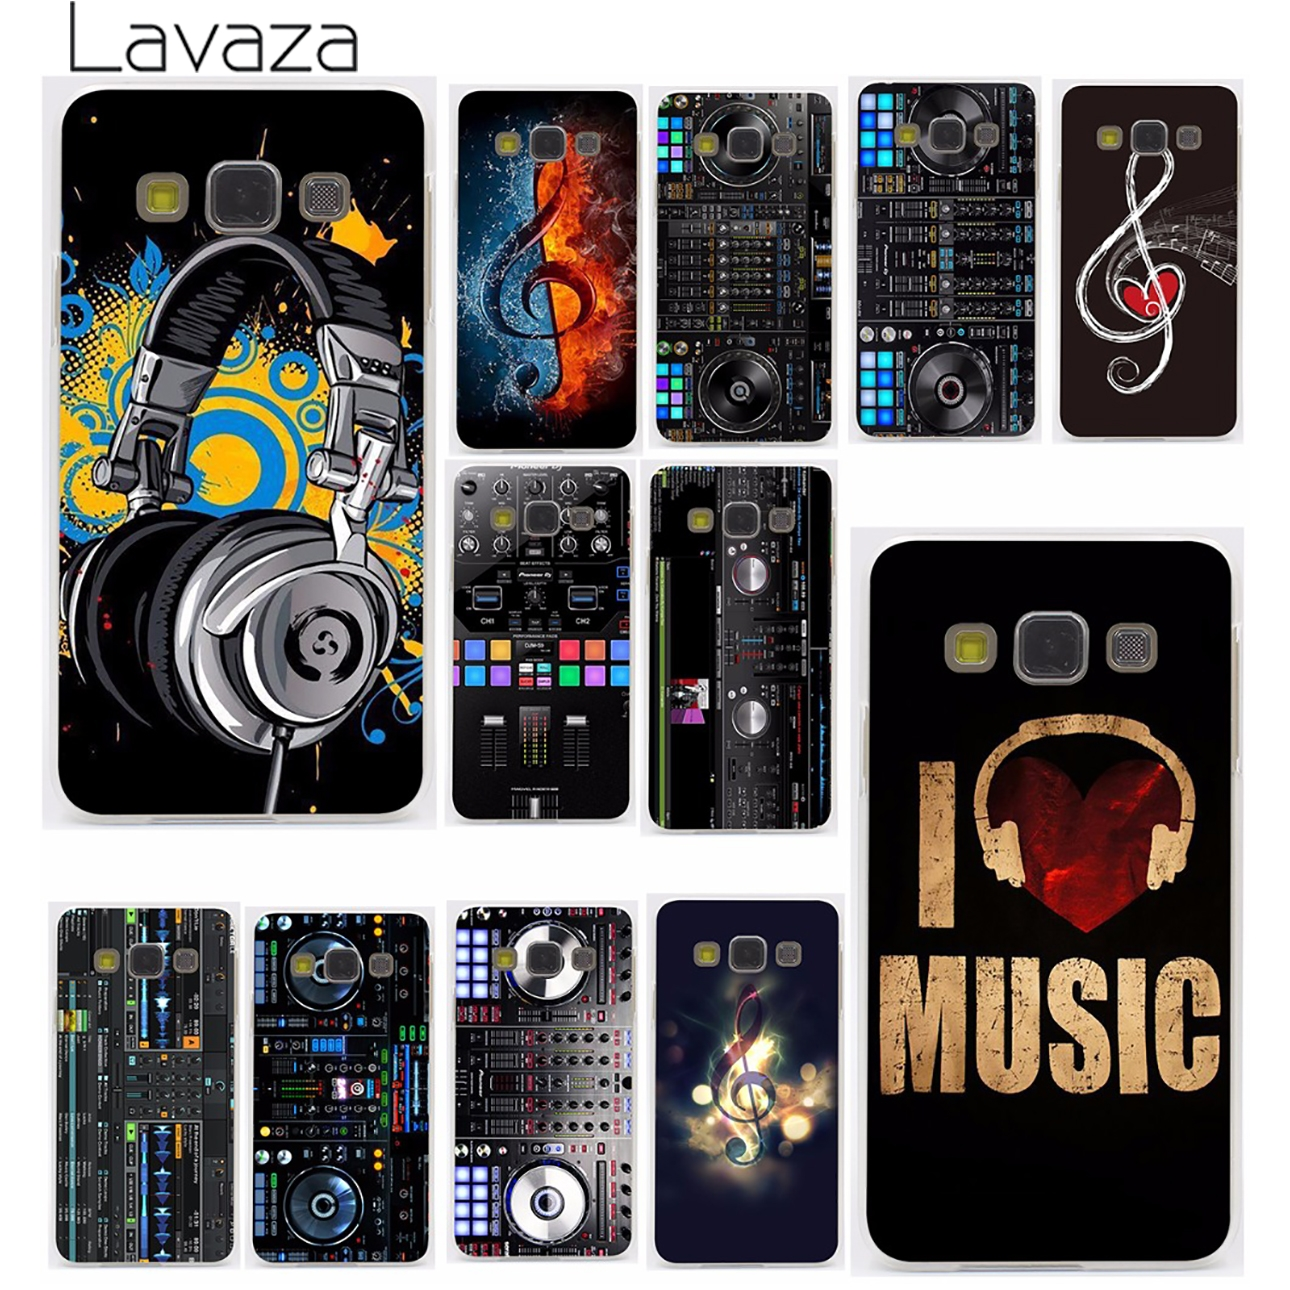 Lavaza ddj dj music Hard Case for Samsung Galaxy S3 S4 S5 & Mini S6 S7 Edge S6 S8 S9 Edge Plus